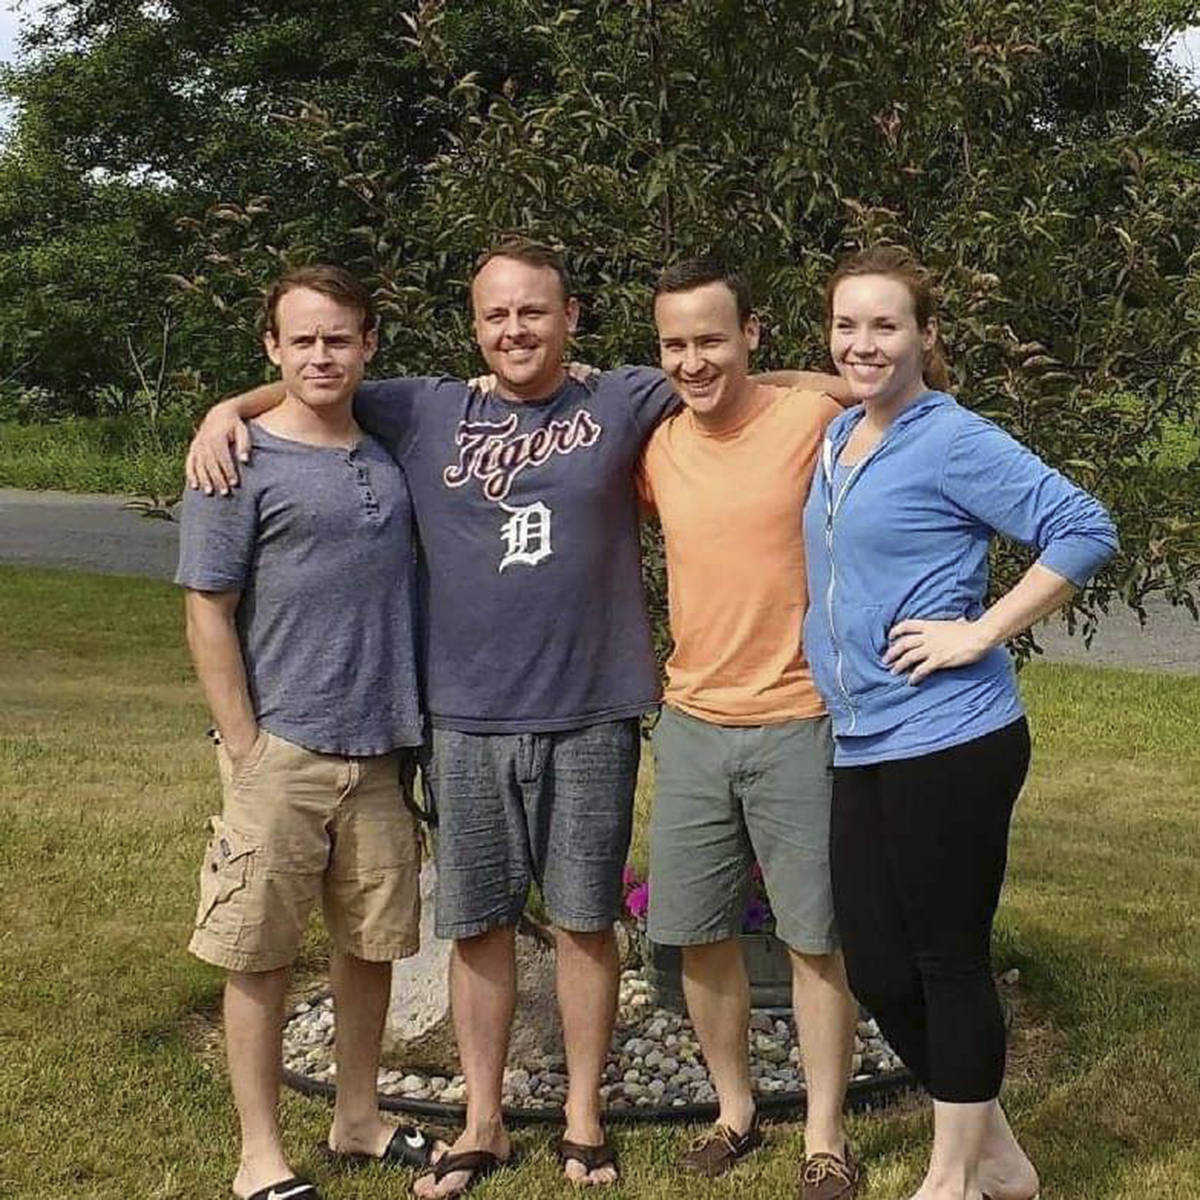 This August 2017 provided by the family shows Jordan McGlashen, left, and his siblings, Brandon ...